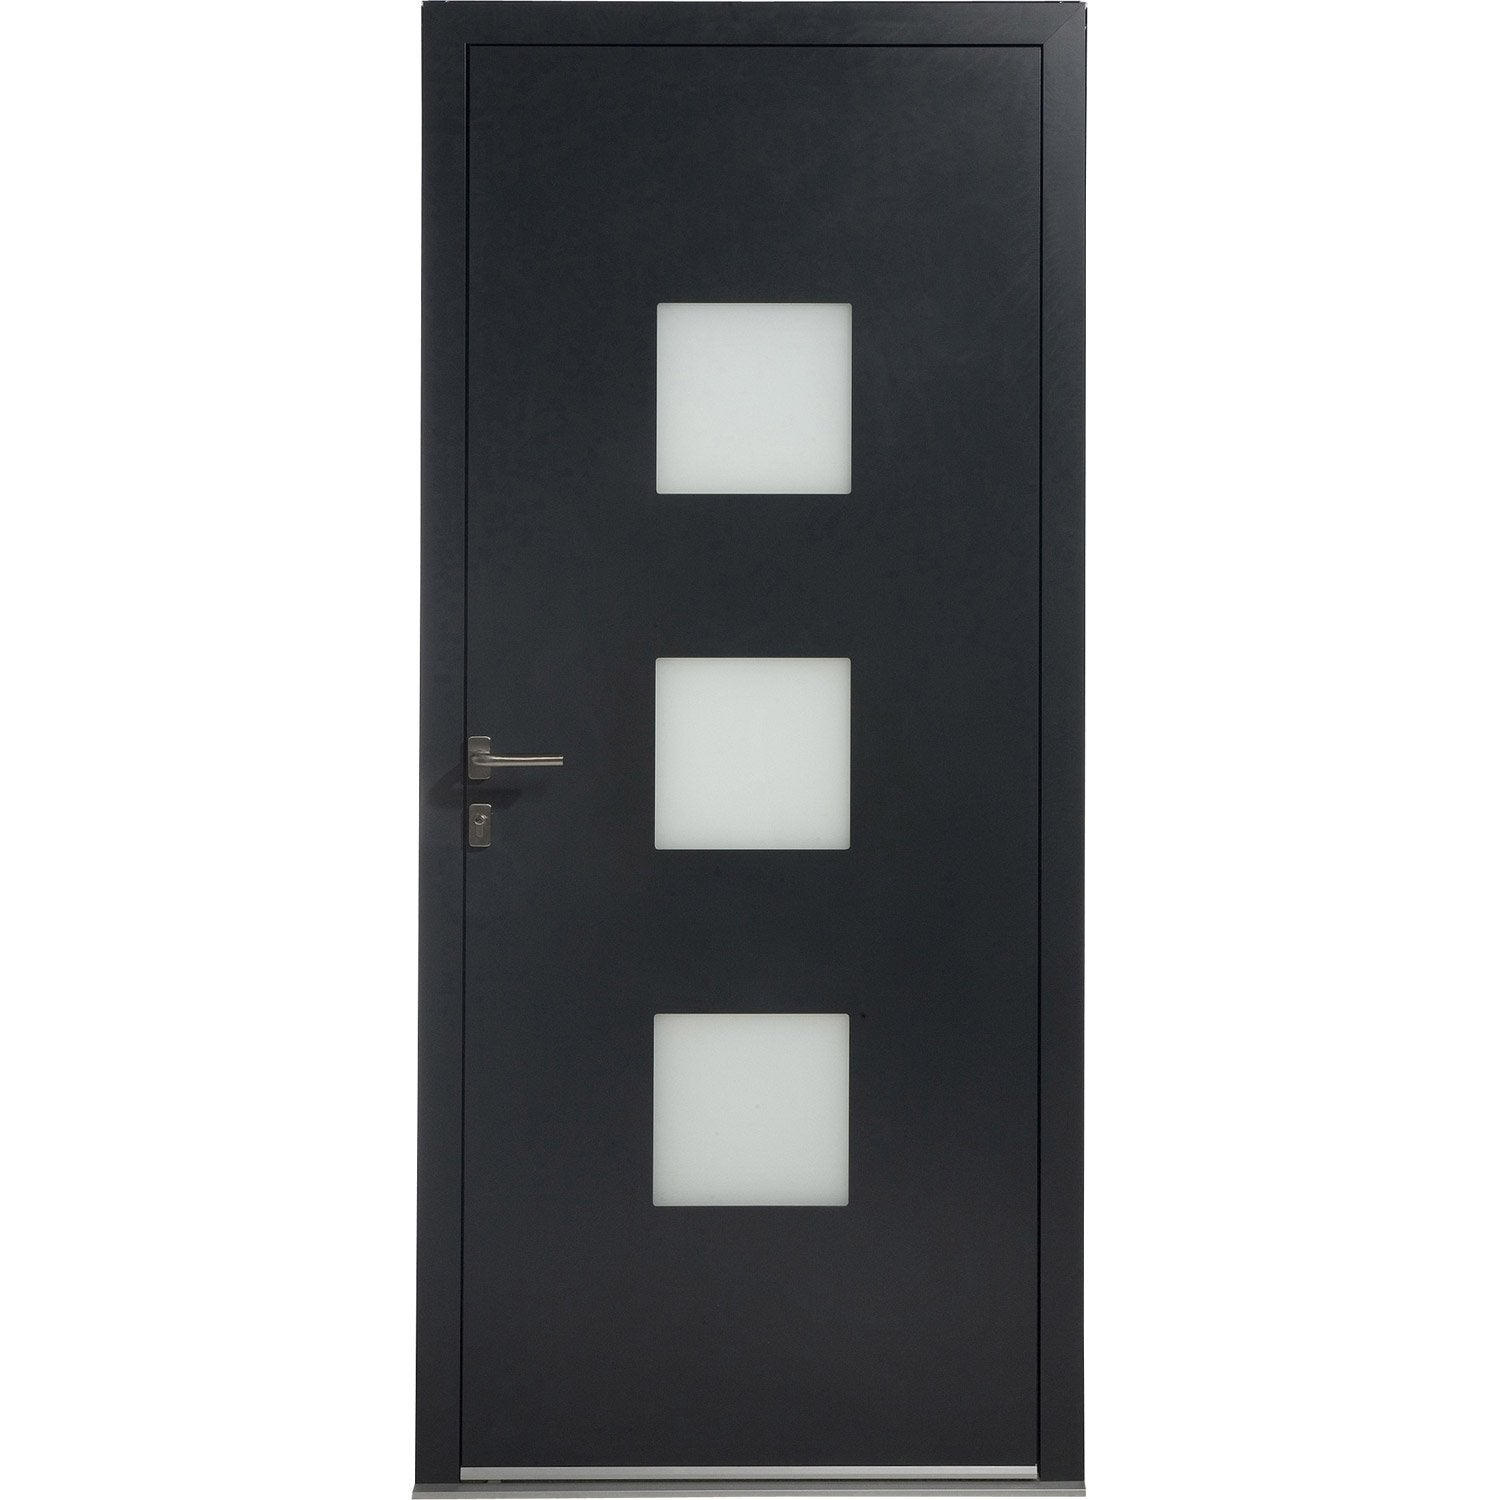 porte d entree bois vitree leroy merlin maison design. Black Bedroom Furniture Sets. Home Design Ideas